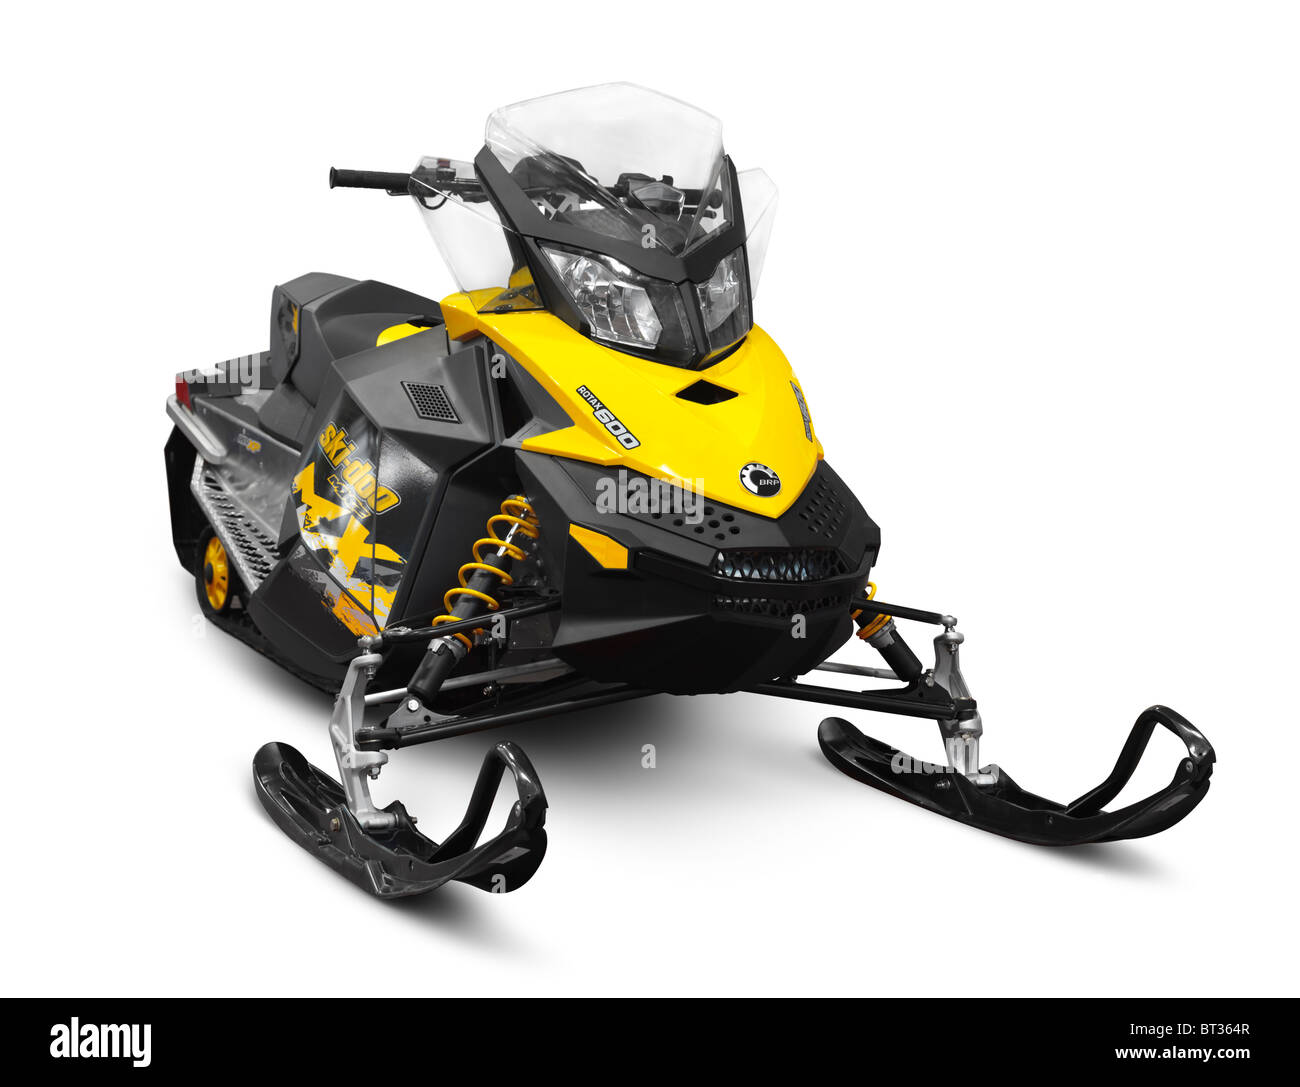 Bombardier Recreational Products BRP Ski-Doo MX Z Sport Snowmobile isolated on white background with clipping path - Stock Image